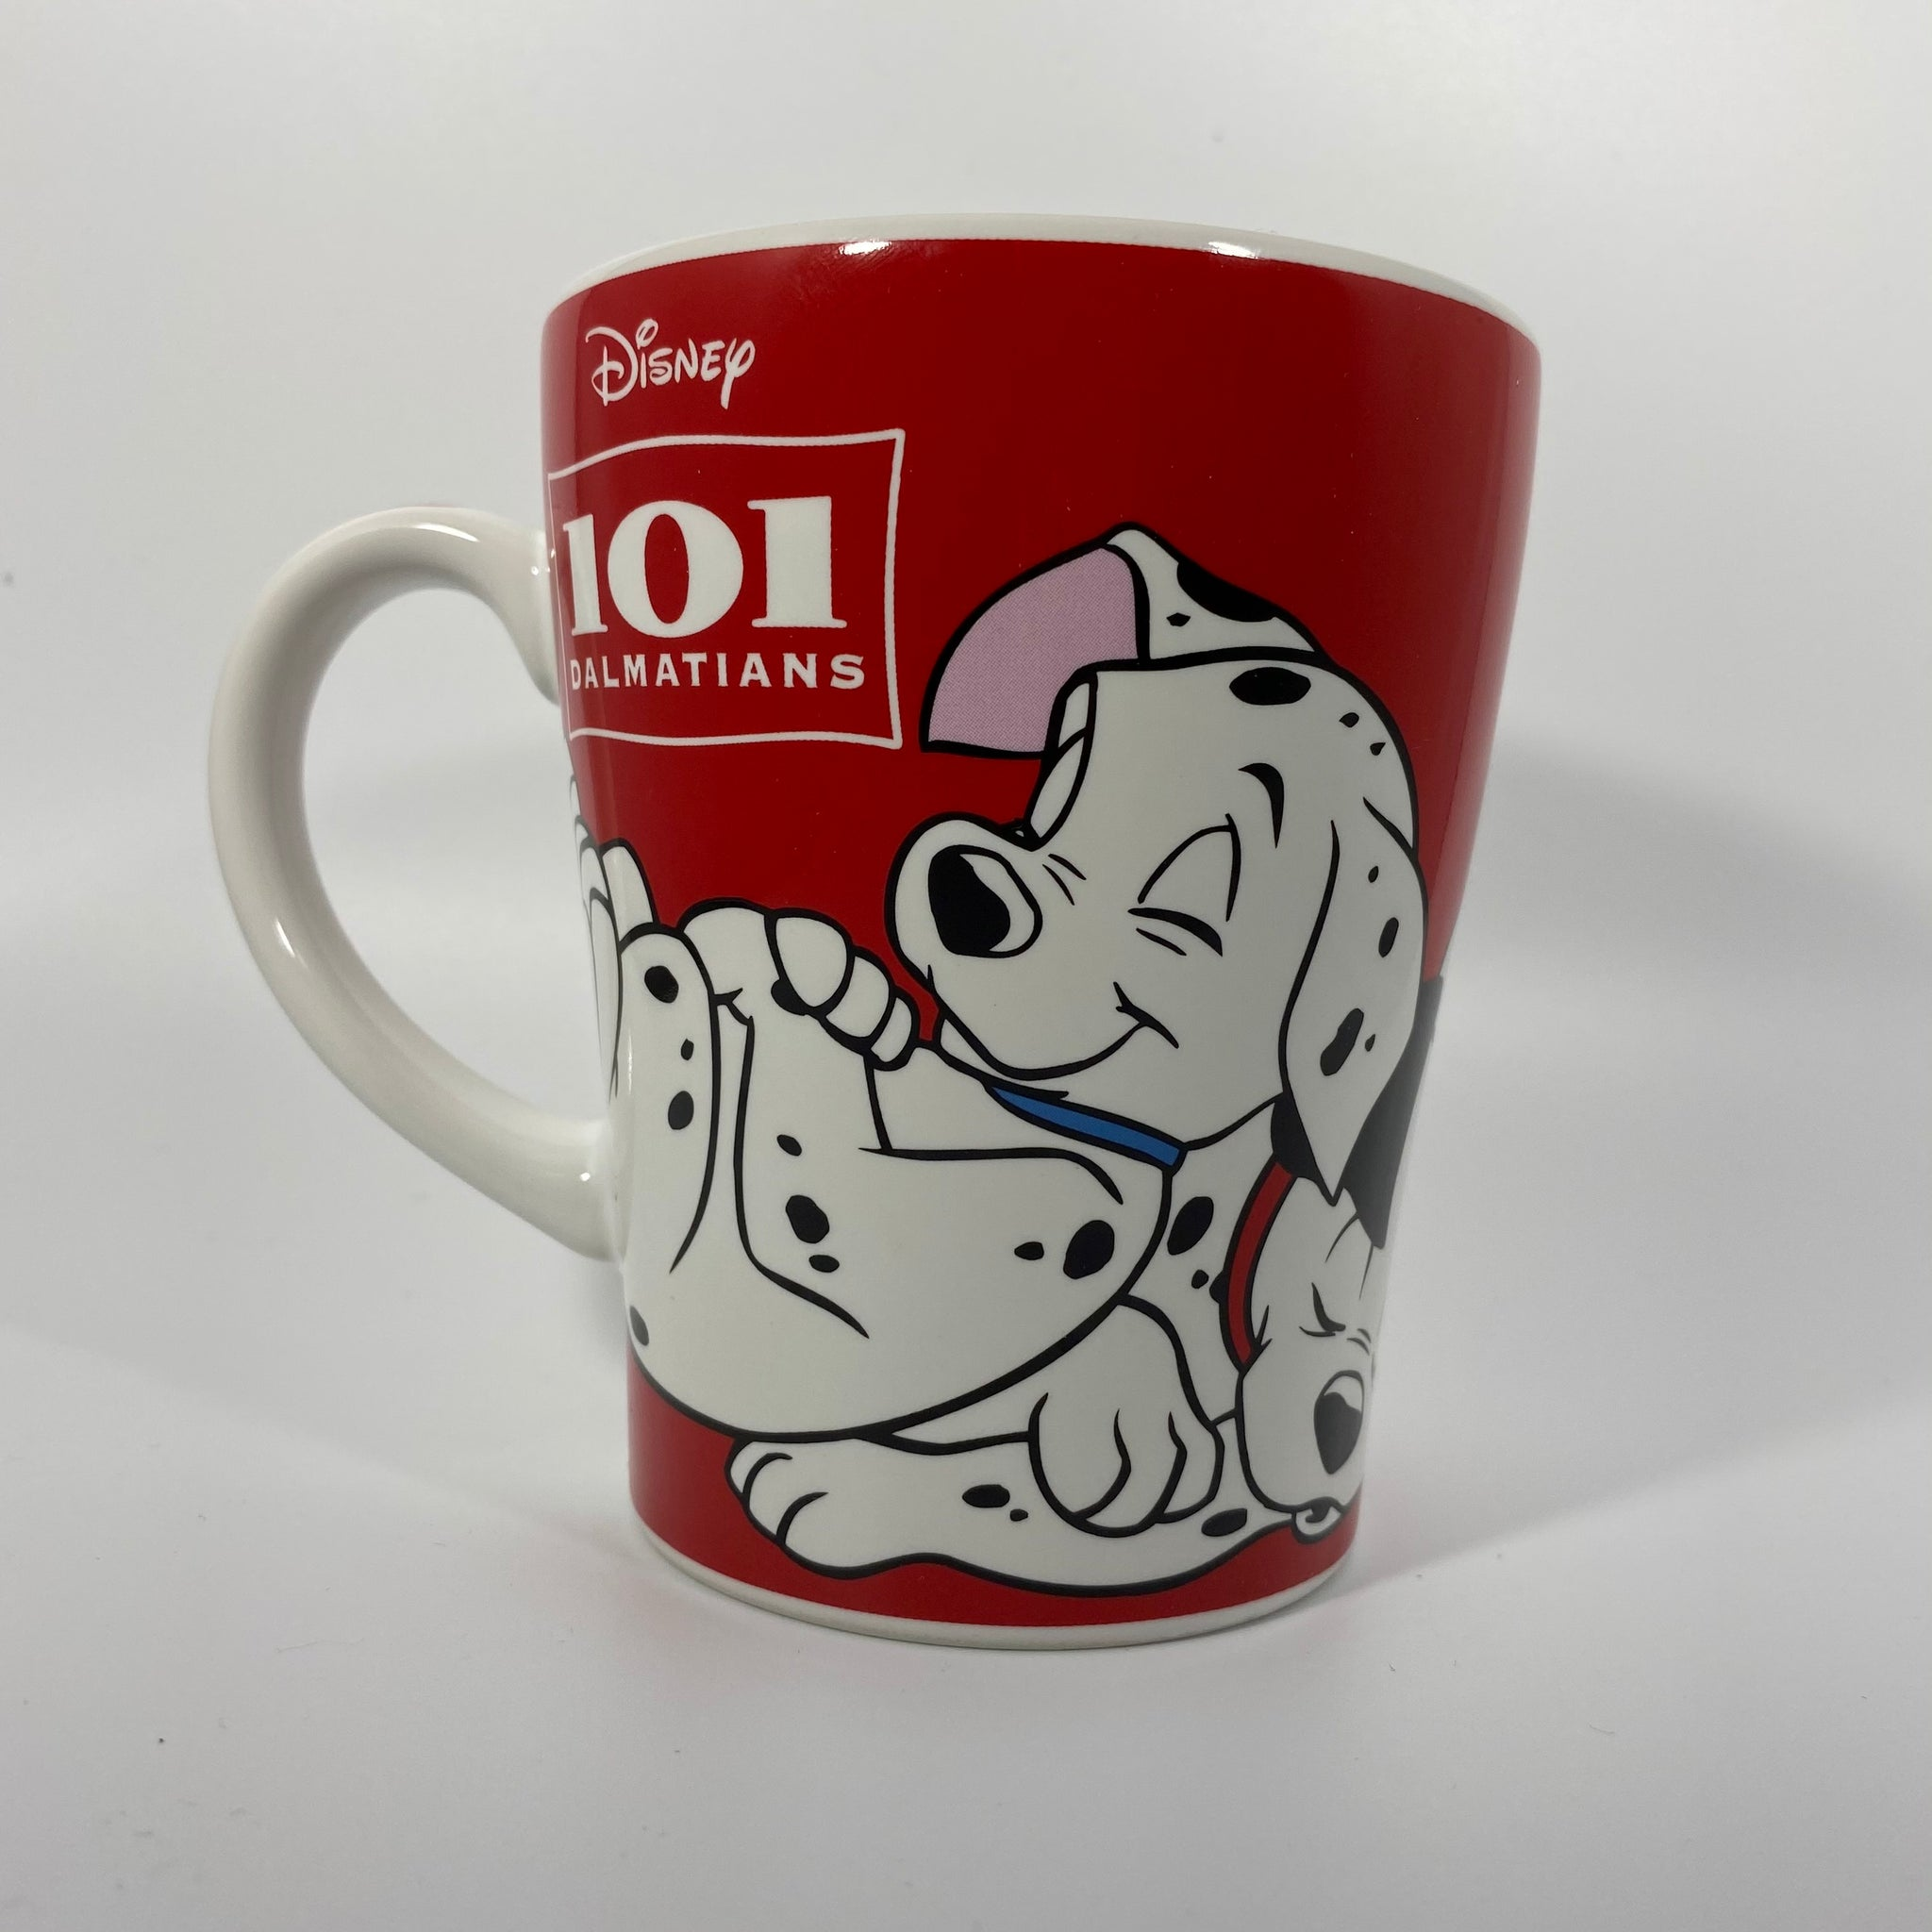 [Front View] Dark Red Base mug, with White Handle. Mug Has photo of multiple of the dalmation puppies from 101 dalmations on one another sleeping all around the mug; all the puppies are in full color. Next to the Image, there is the 101 dalmations logo in print with a square framed border around it,  and the disney logo on top, all in white.